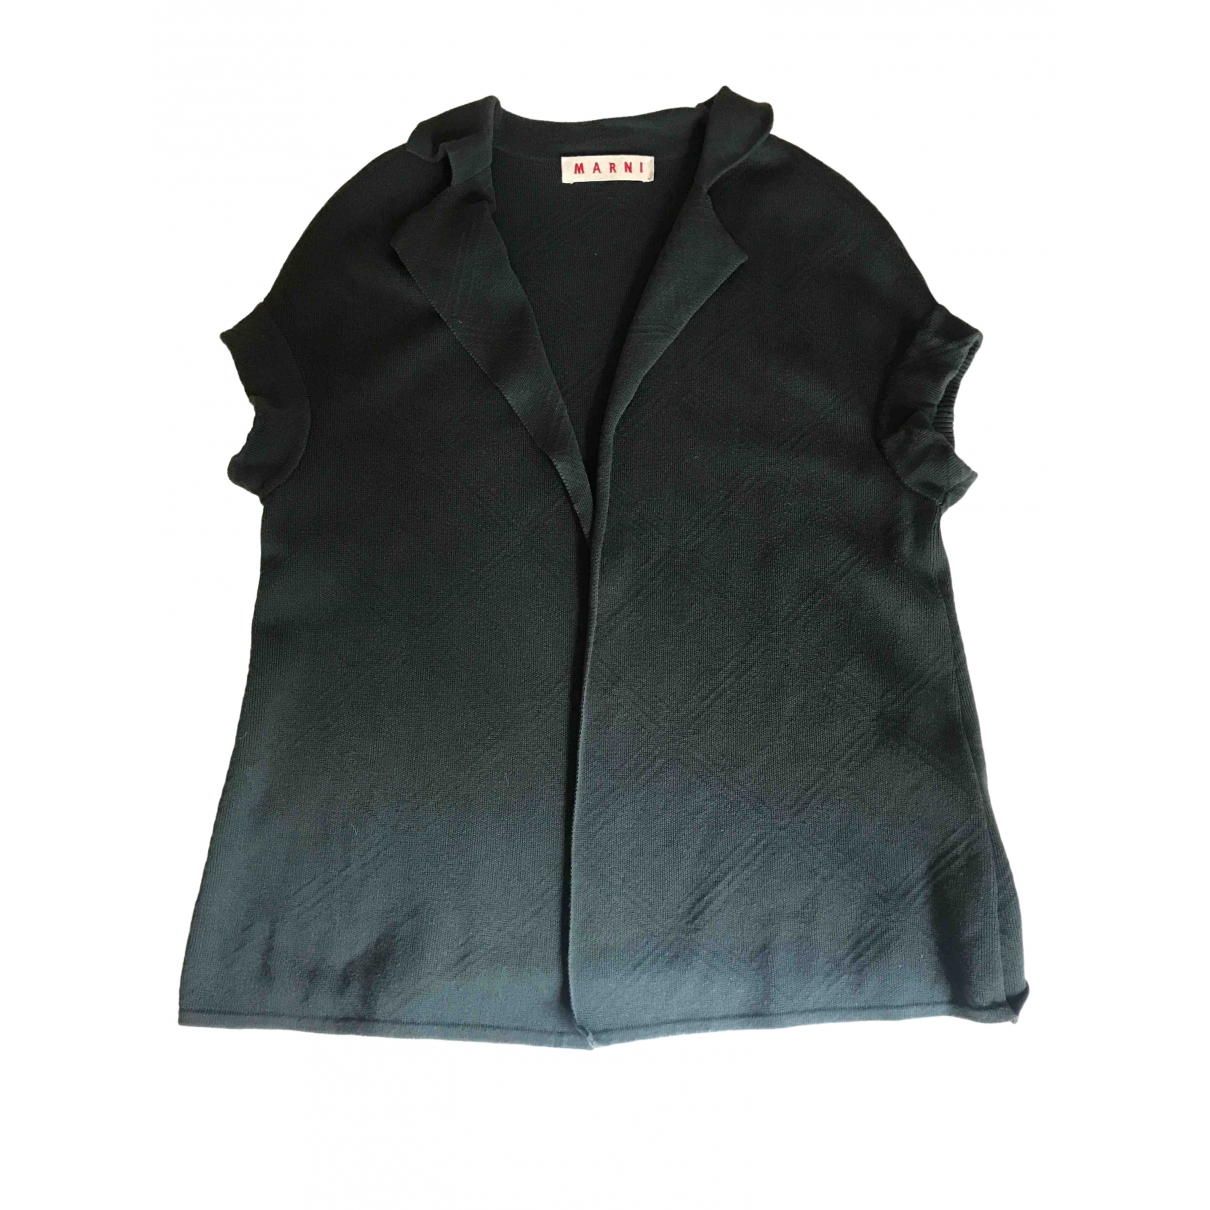 Marni \N Green Cotton jacket for Women 44 IT